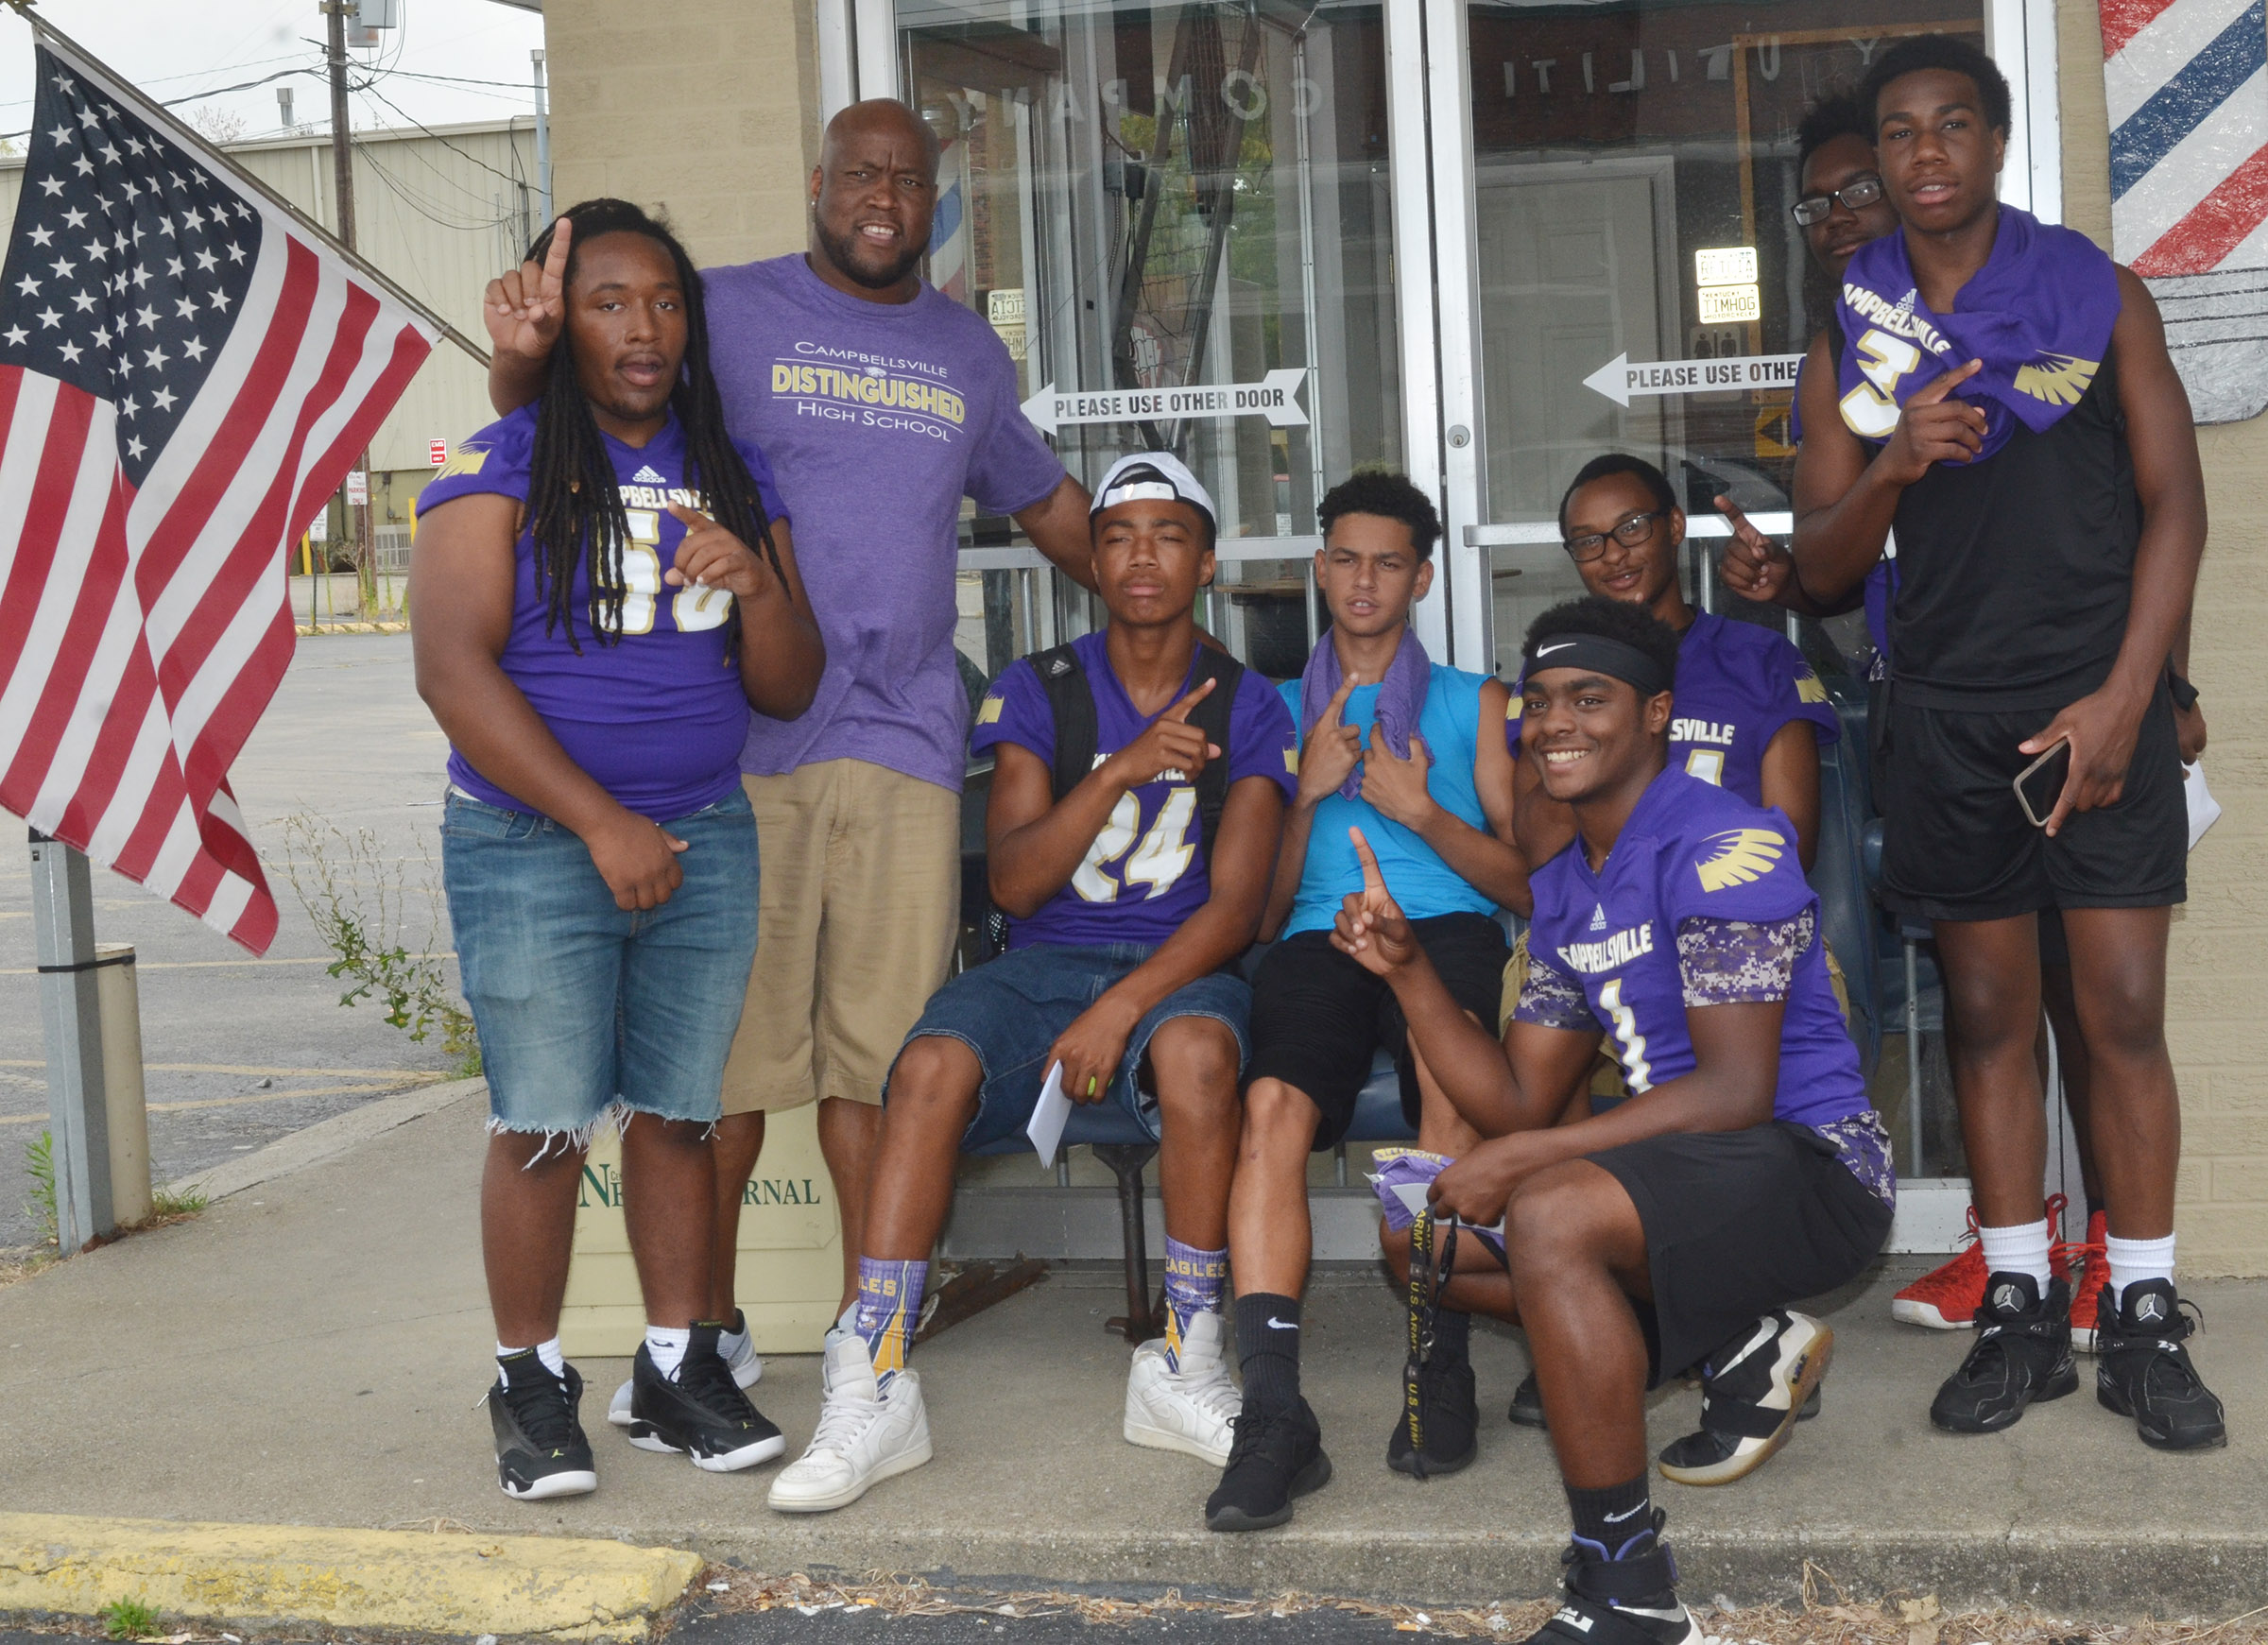 CHS students pose for a photo outside Disco's Chop Shop with exceptional child educator Anthony Epps. From left are junior Ceondre Barnett, Epps, sophomores Lathan Cubit and Mikael Vaught, juniors Charlie Pettigrew and Daesean Vancleave and sophomores Taekwon McCoy and Malachi Corley.